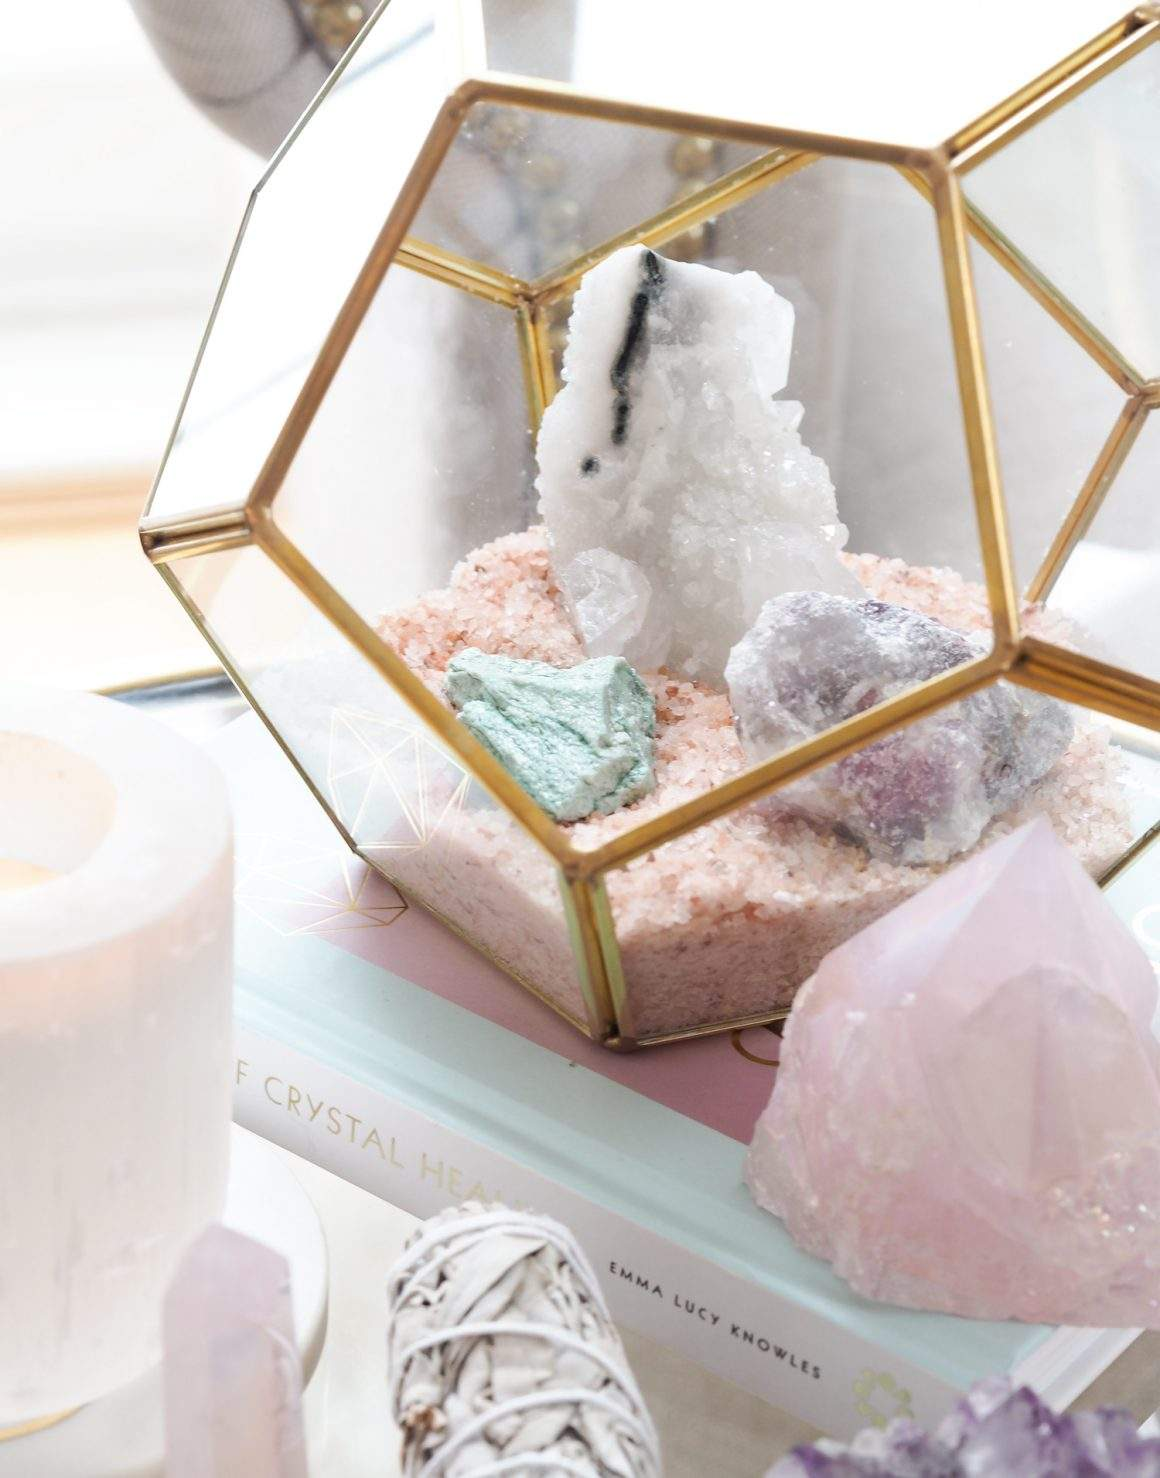 How To Cleanse And Charge Your Crystals As A Beginner